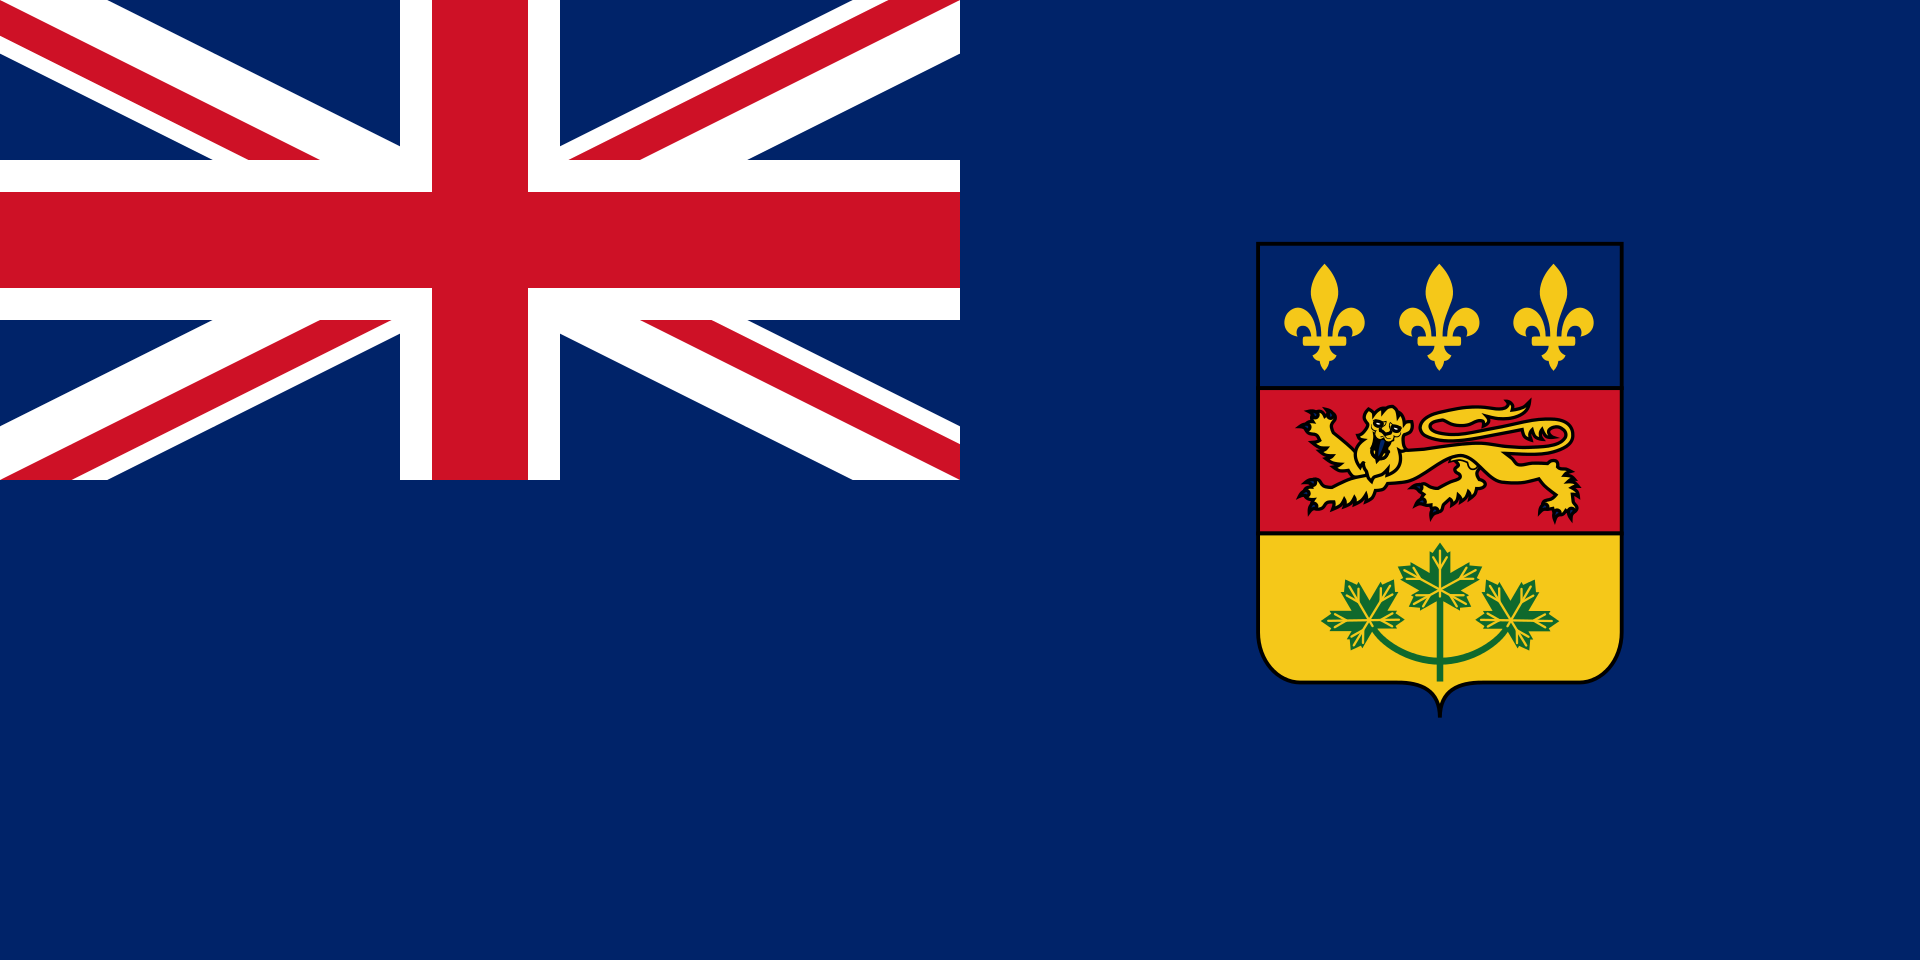 quebec blue ensign